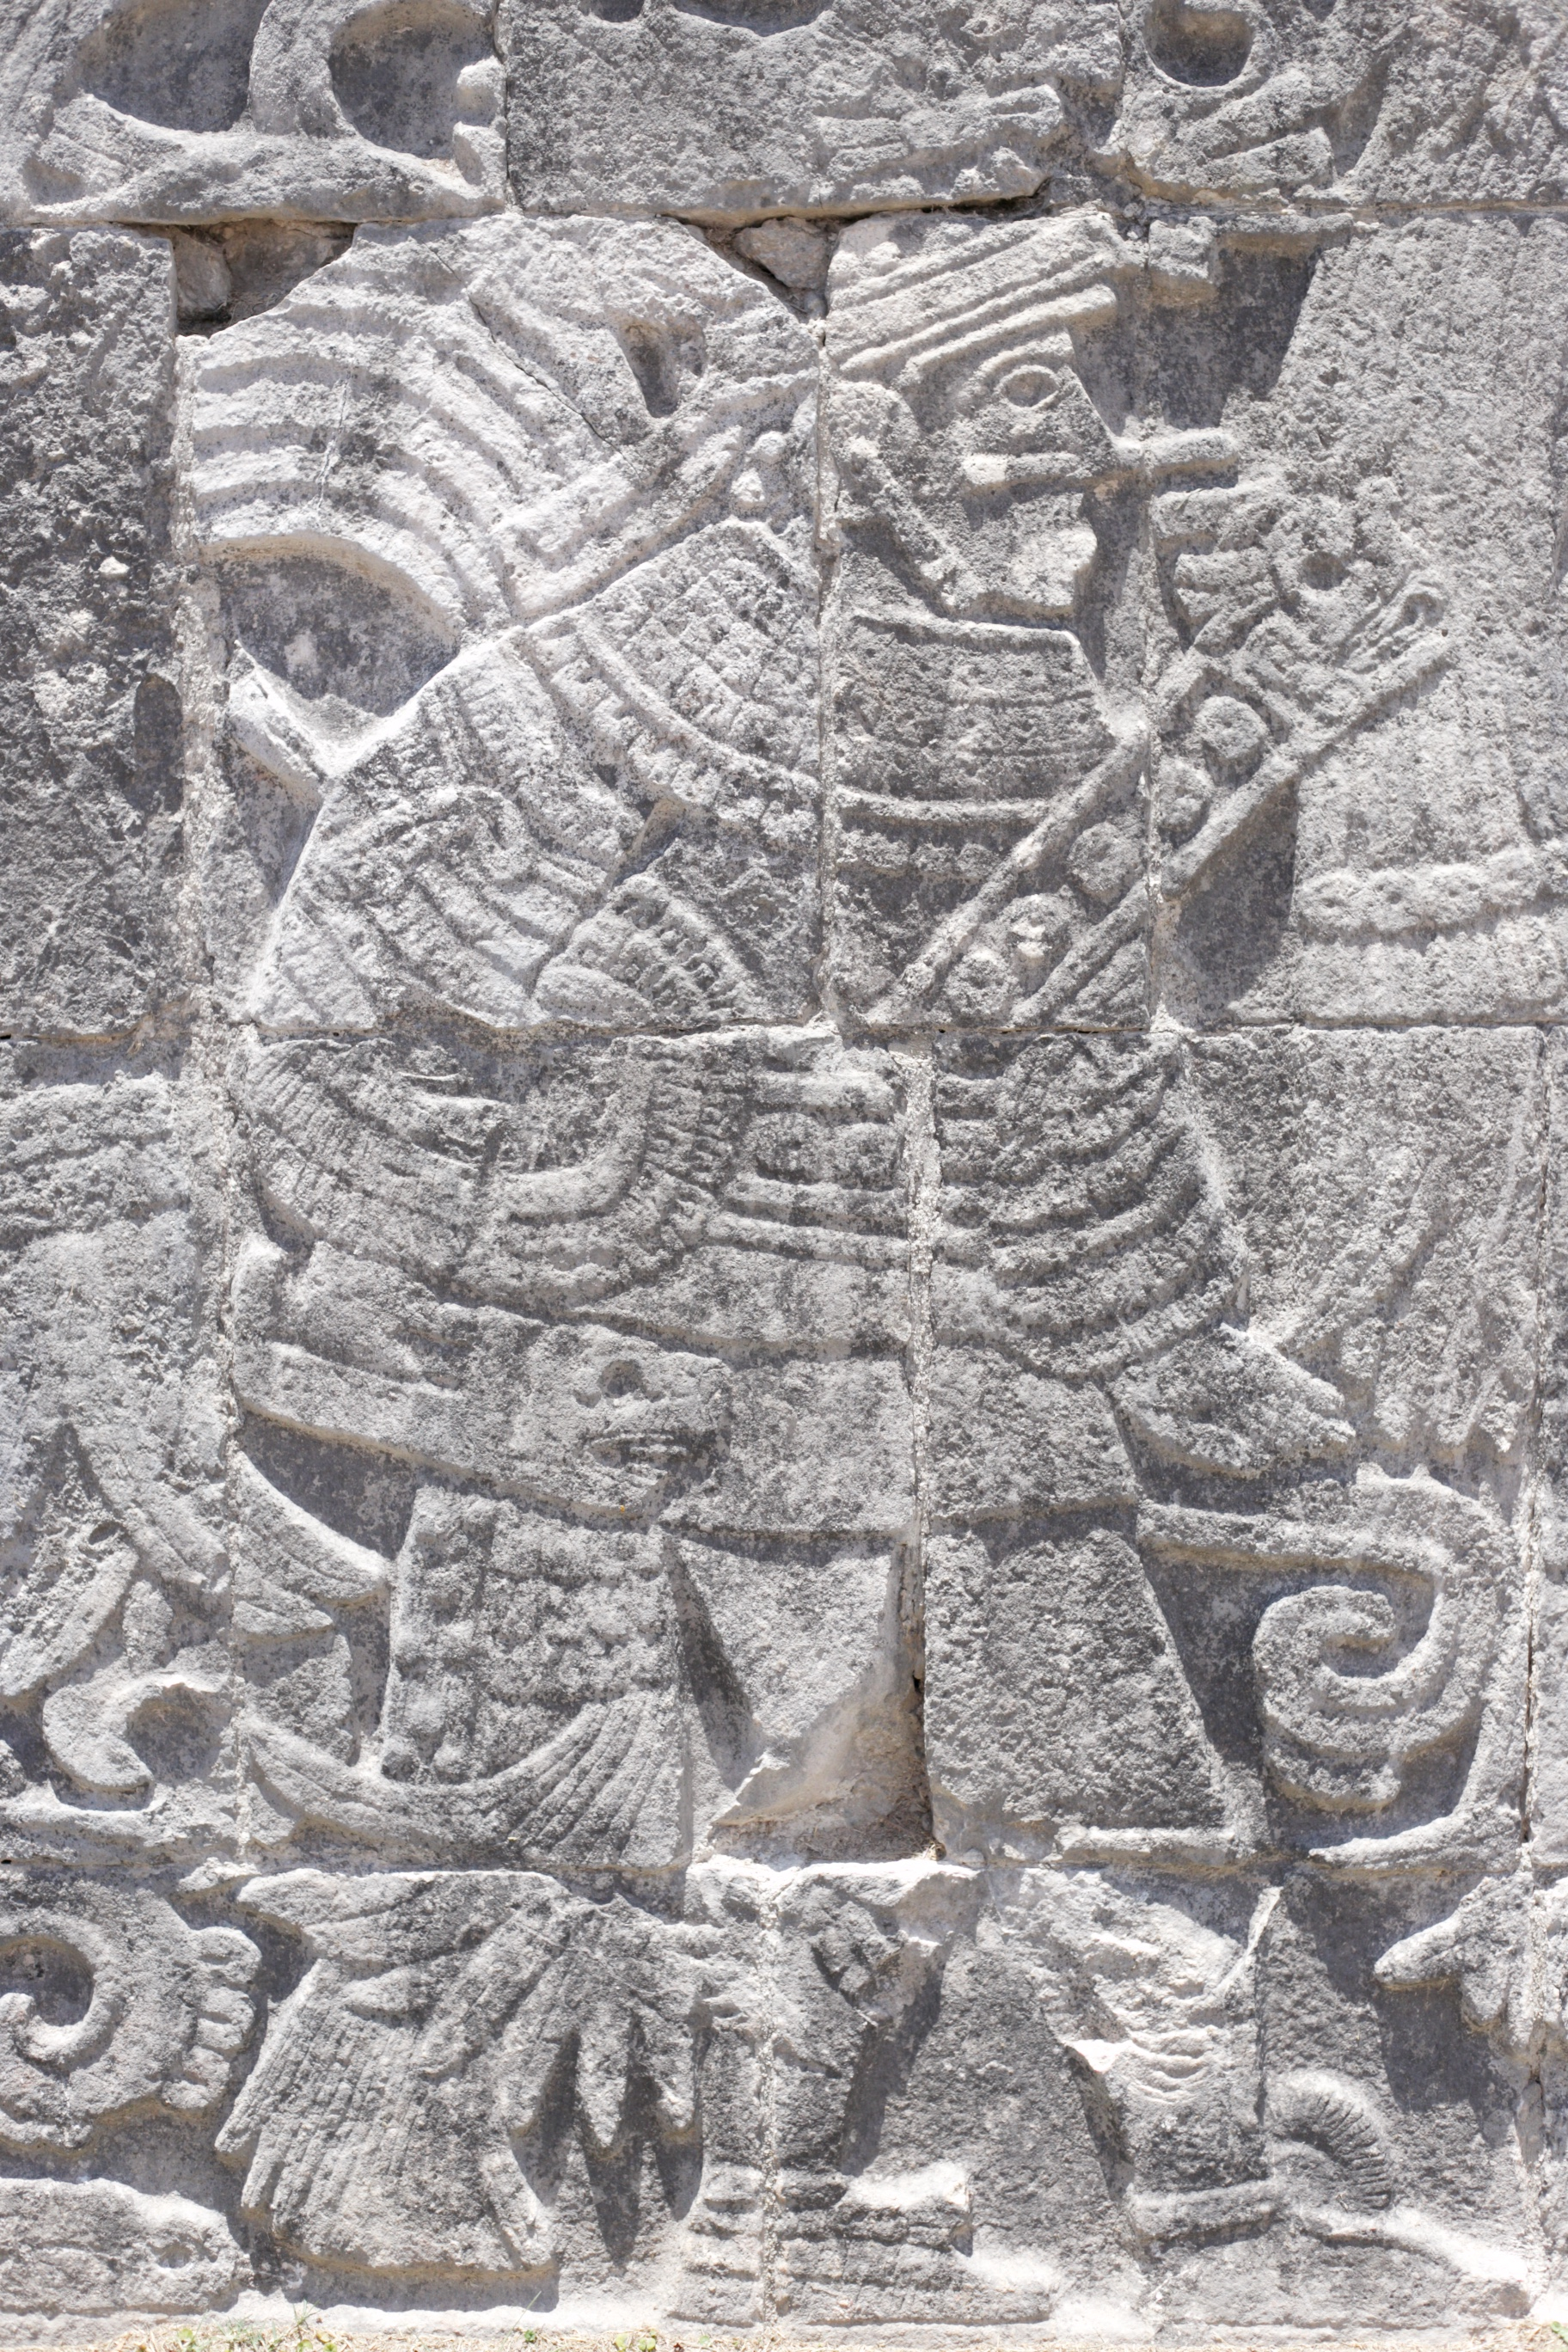 Mayan carving of a warrior or ball player in the old ball court Chichen Itza.